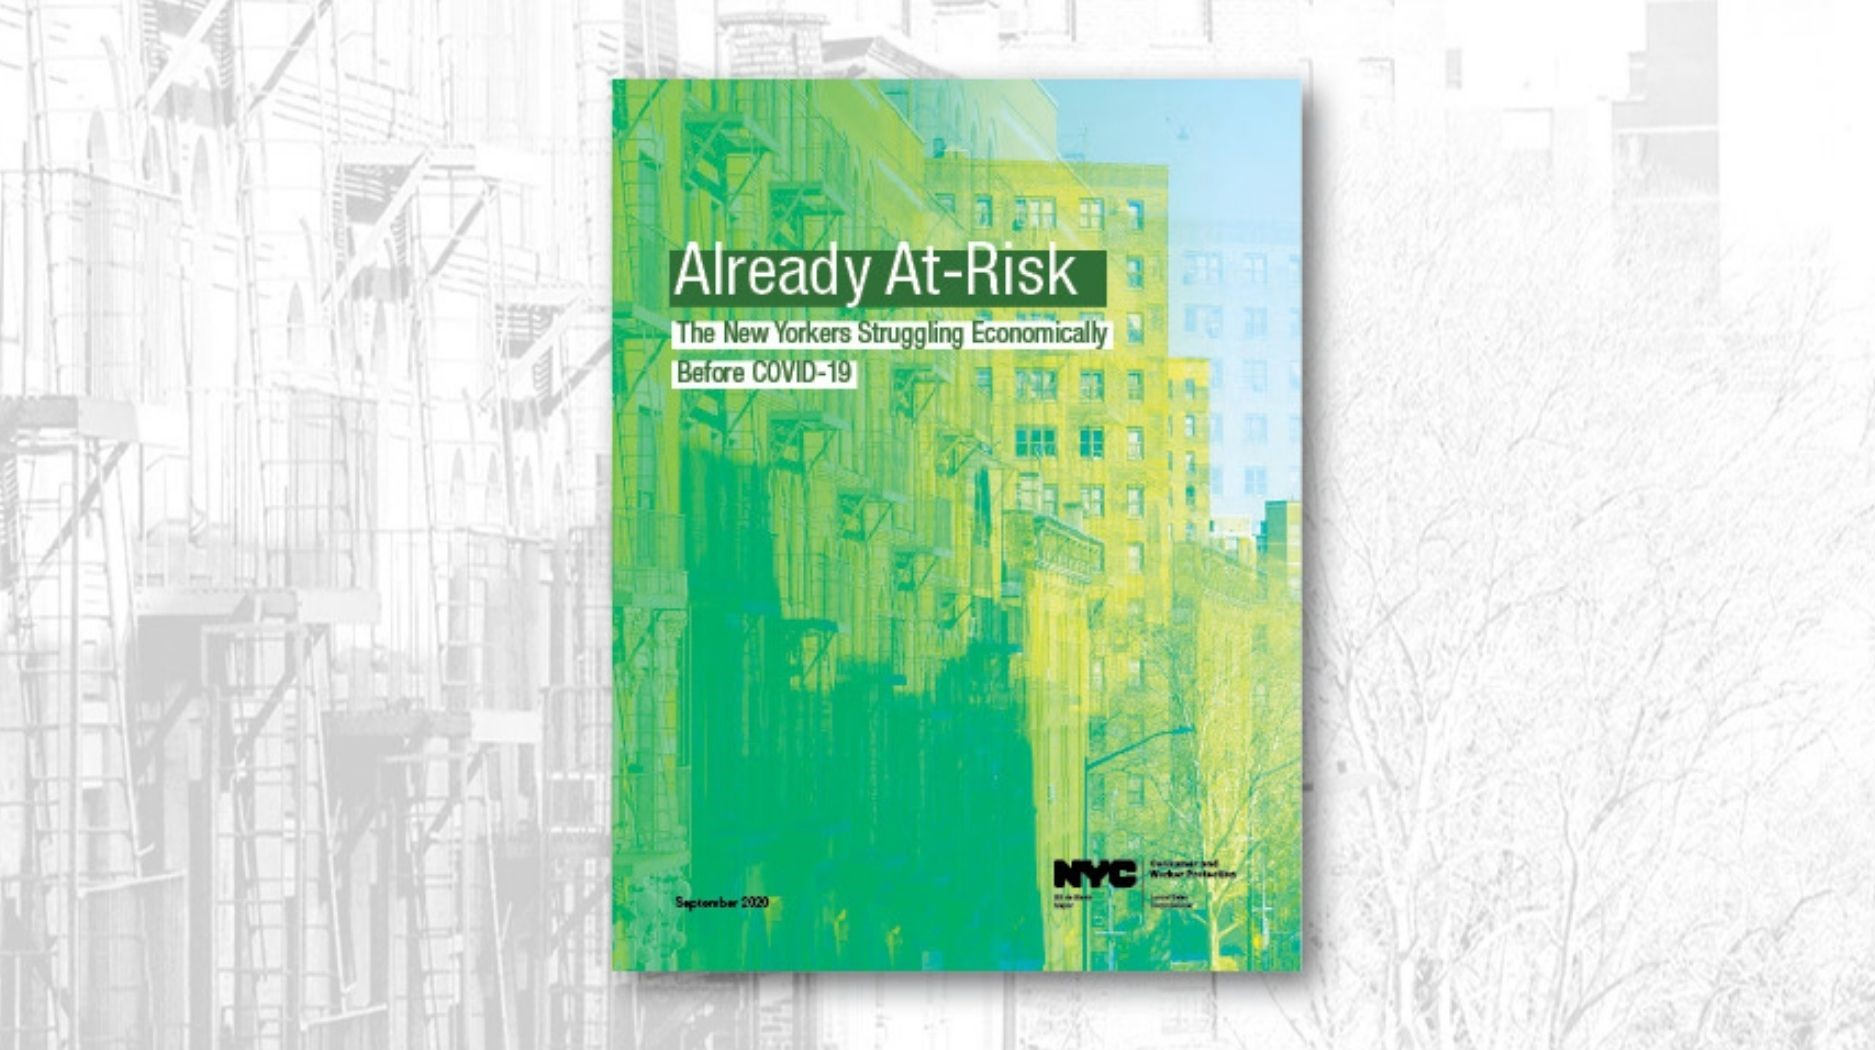 Report cover of Already At-Risk: The New Yorkers Struggling Economically Before COVID-19